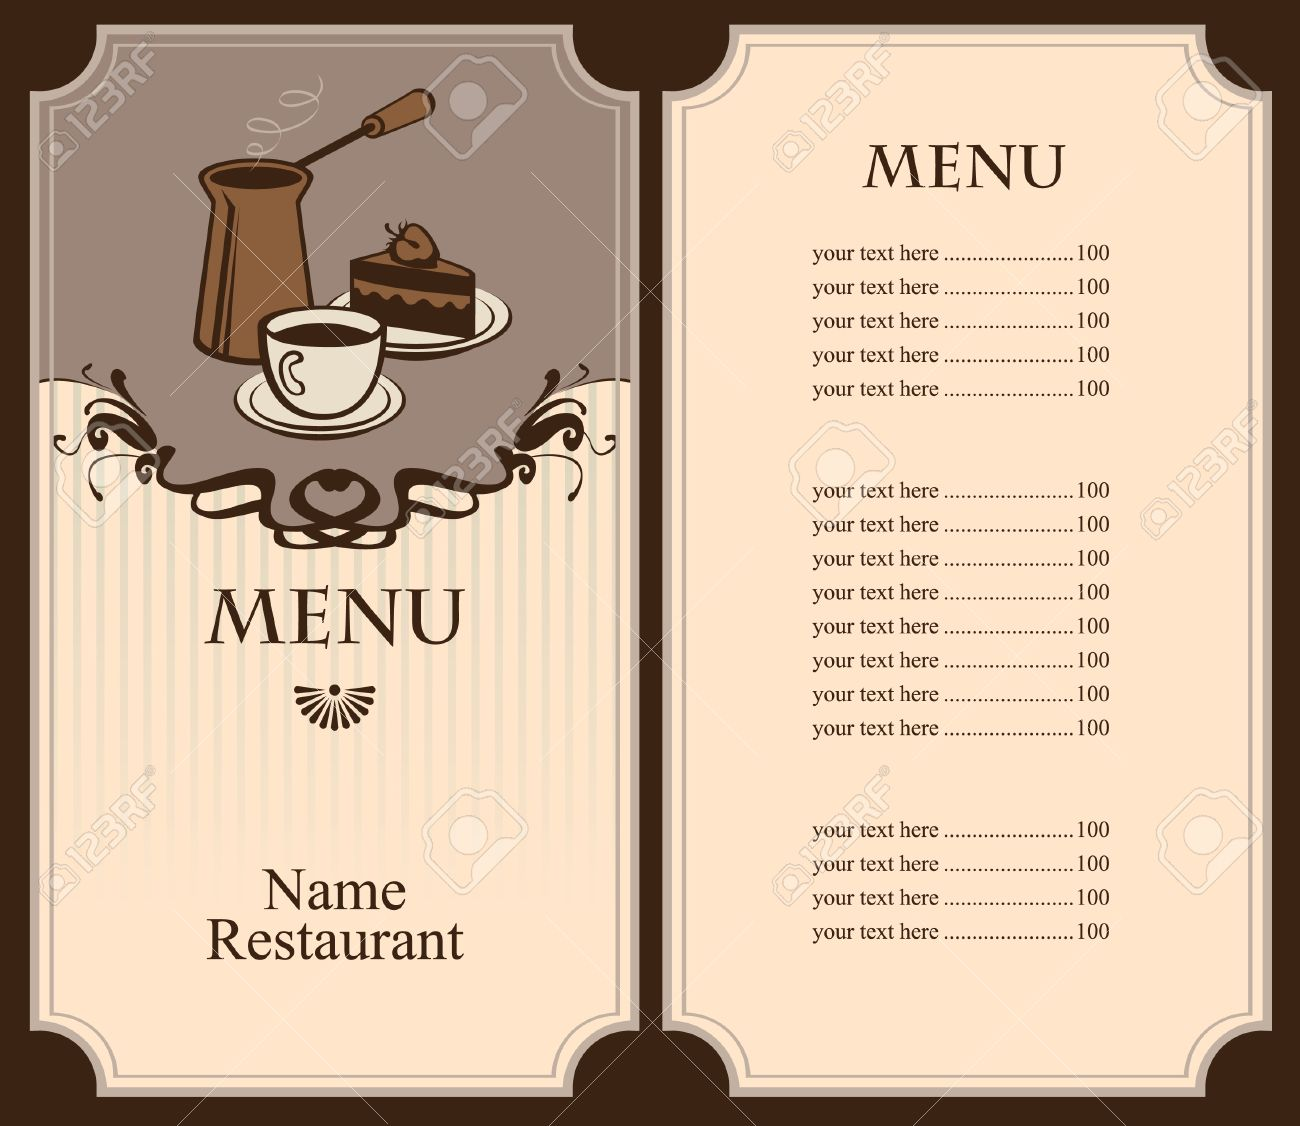 menu for coffee and dessert royalty free cliparts, vectors, and